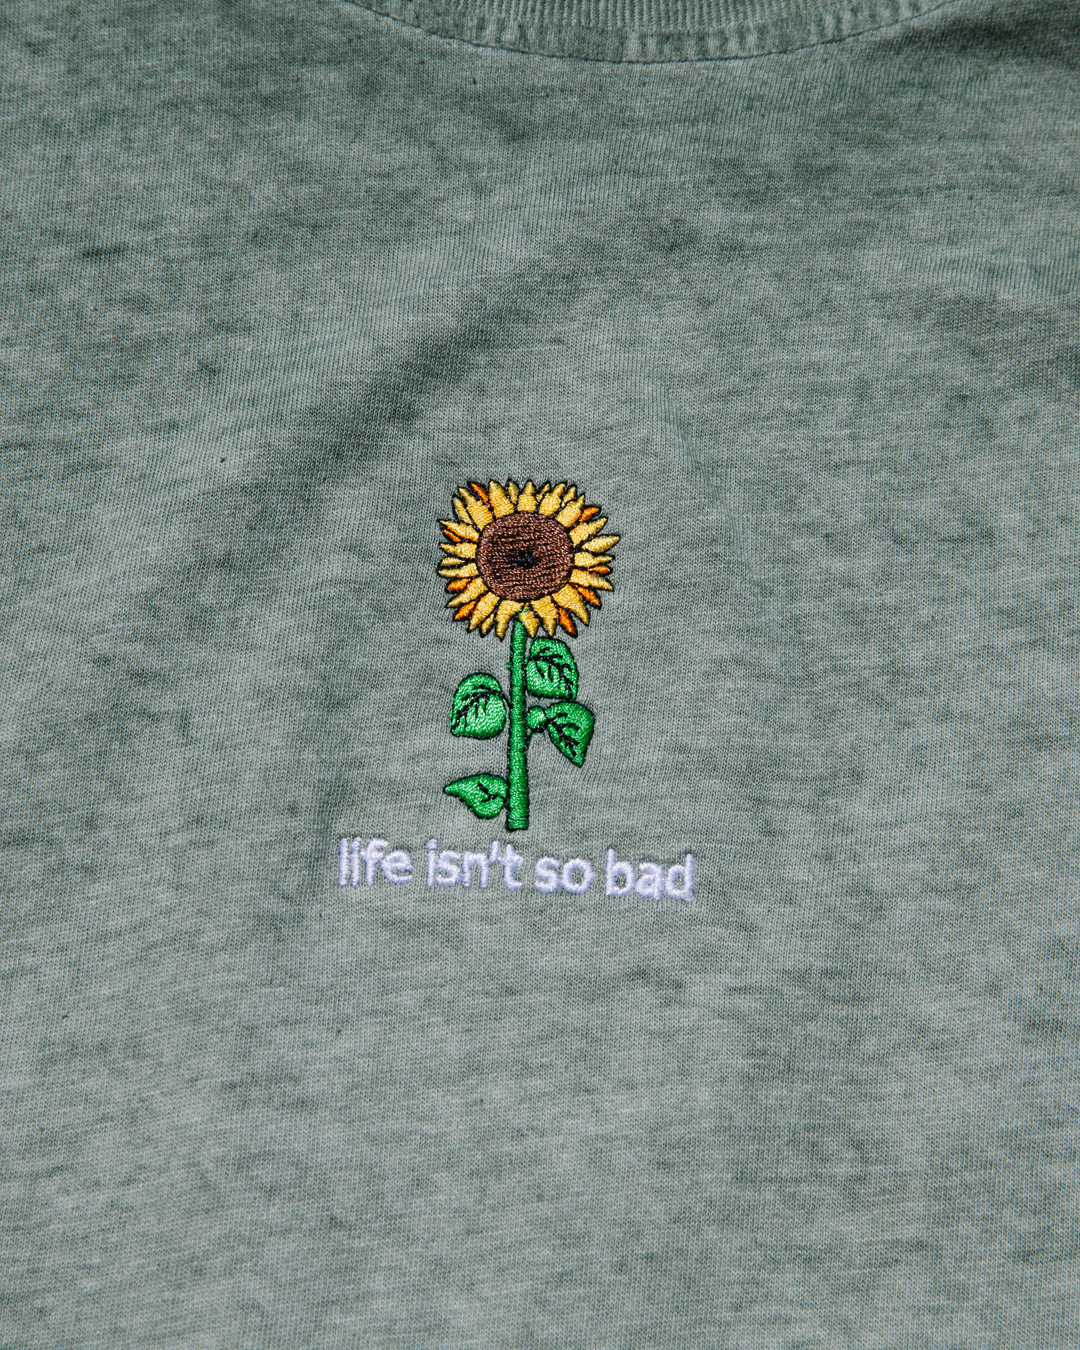 LIFE ISN'T SO BAD WASHED SS TEE - LA FAMILIA MMXIV